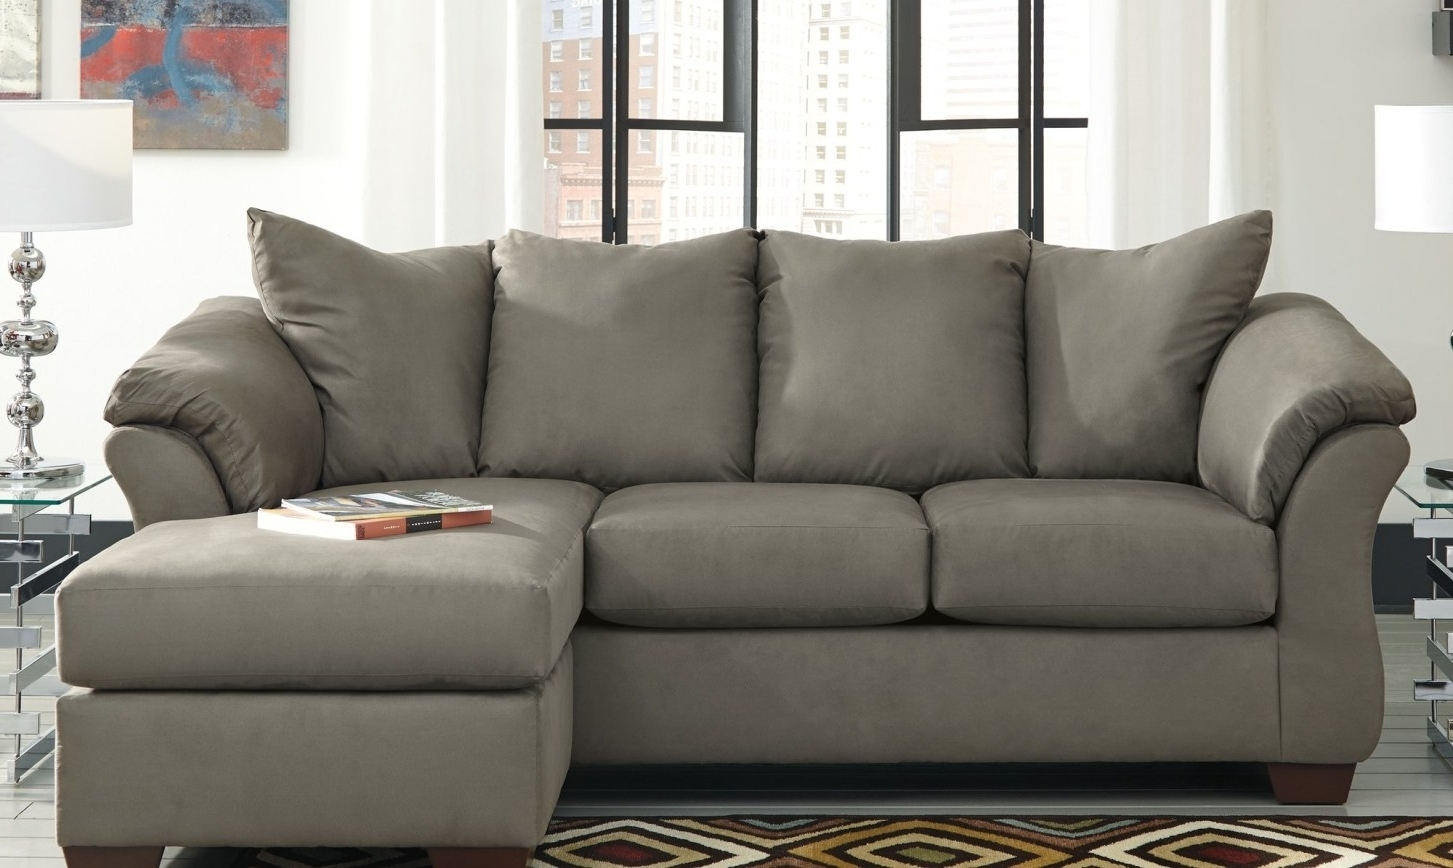 Fashionable Abbyson Sectional Sofas Intended For Stylish Abbyson Living Charlotte Dark Brown Sectional Sofa And (View 17 of 20)